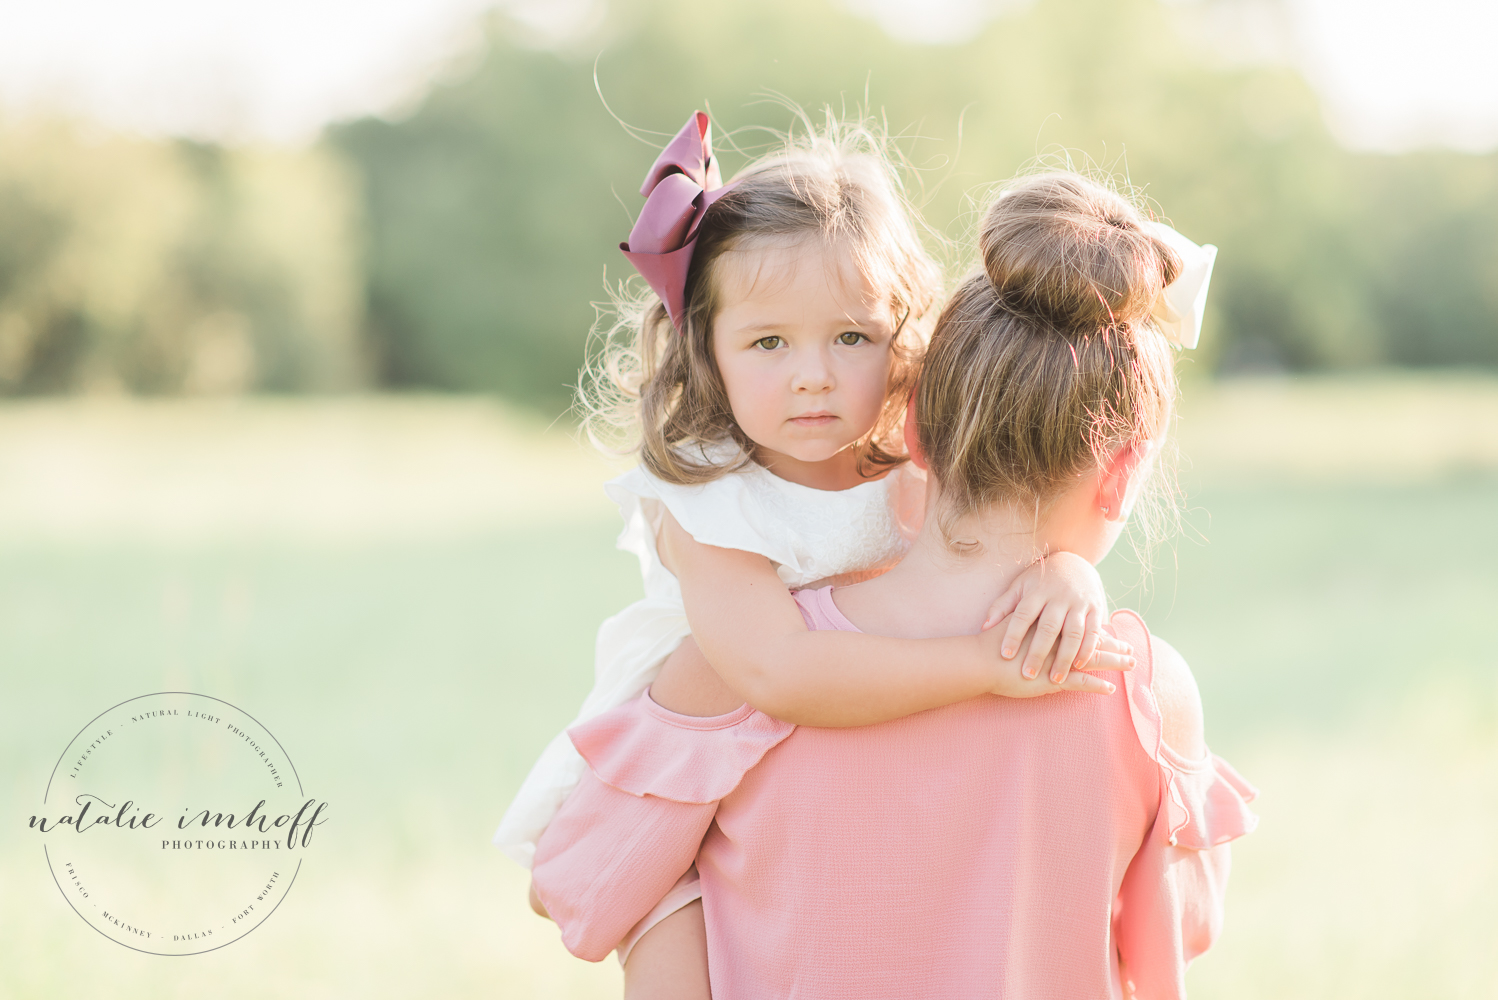 Natalie Imhoff Photography - Frisco Family Photography - Family Photos - Frisco Texas  - 2017 - Web-10.JPG